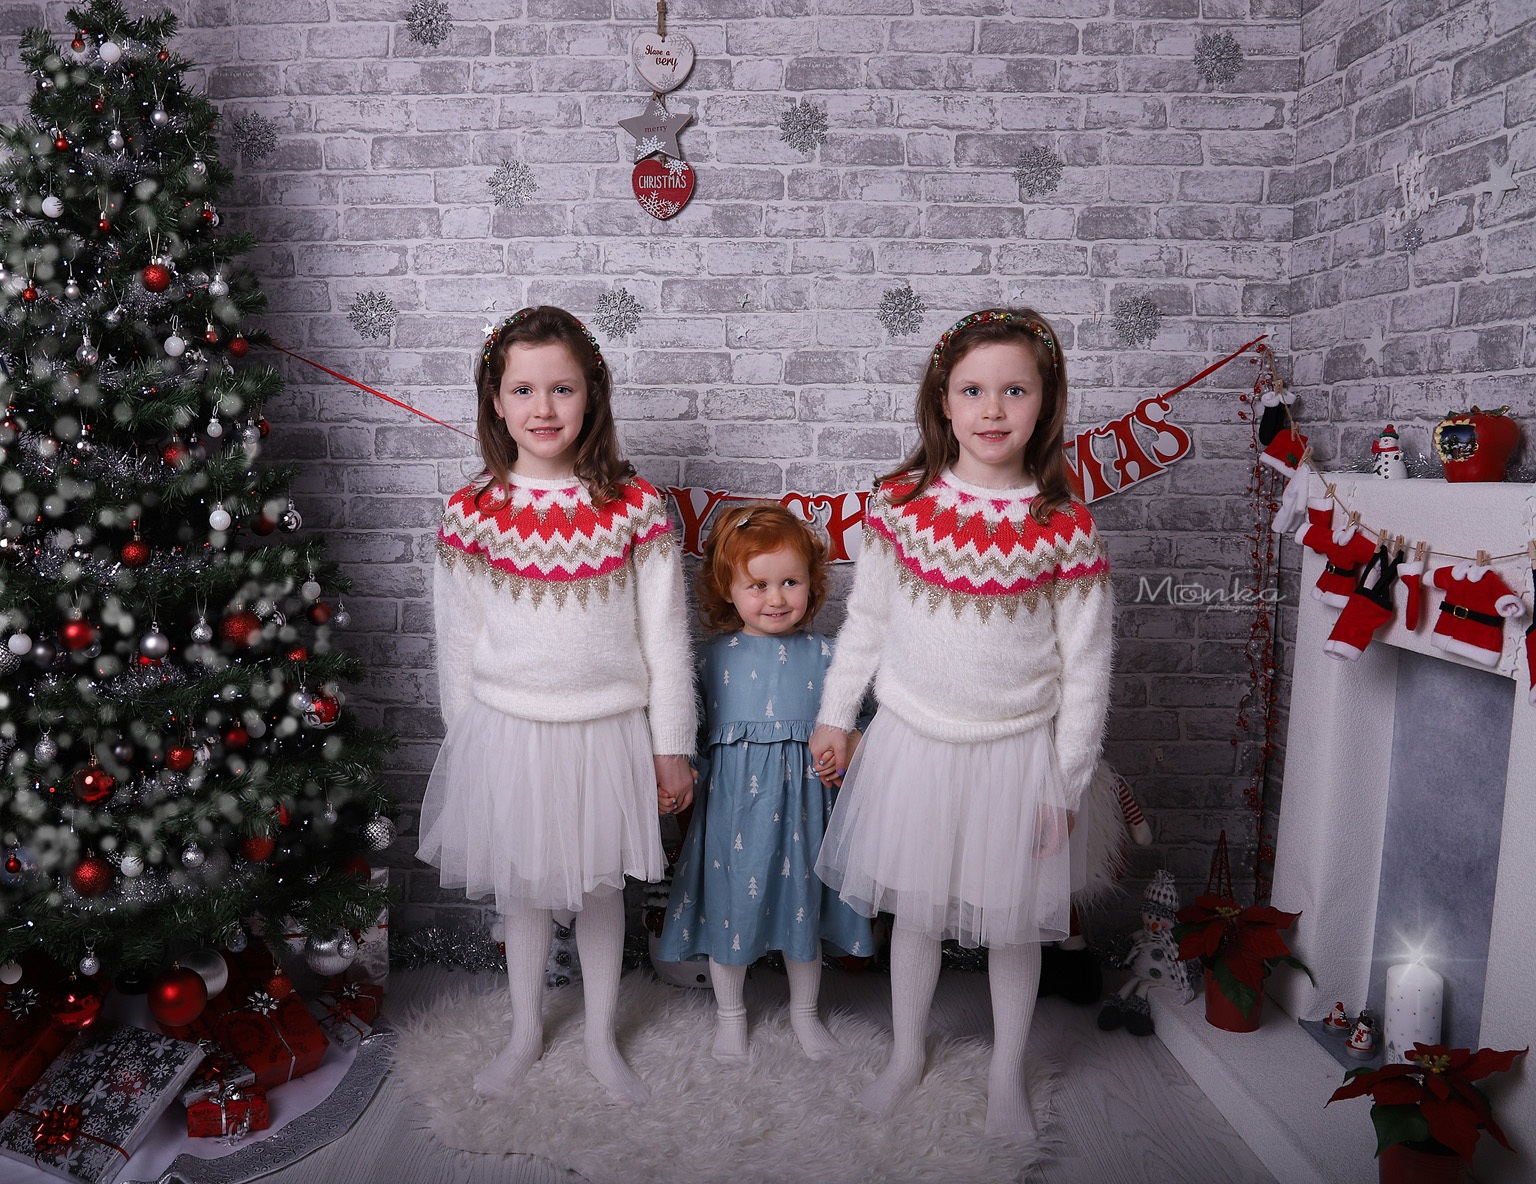 Christmas Mini Sessions with Monka Photography in Athy, County Kildare